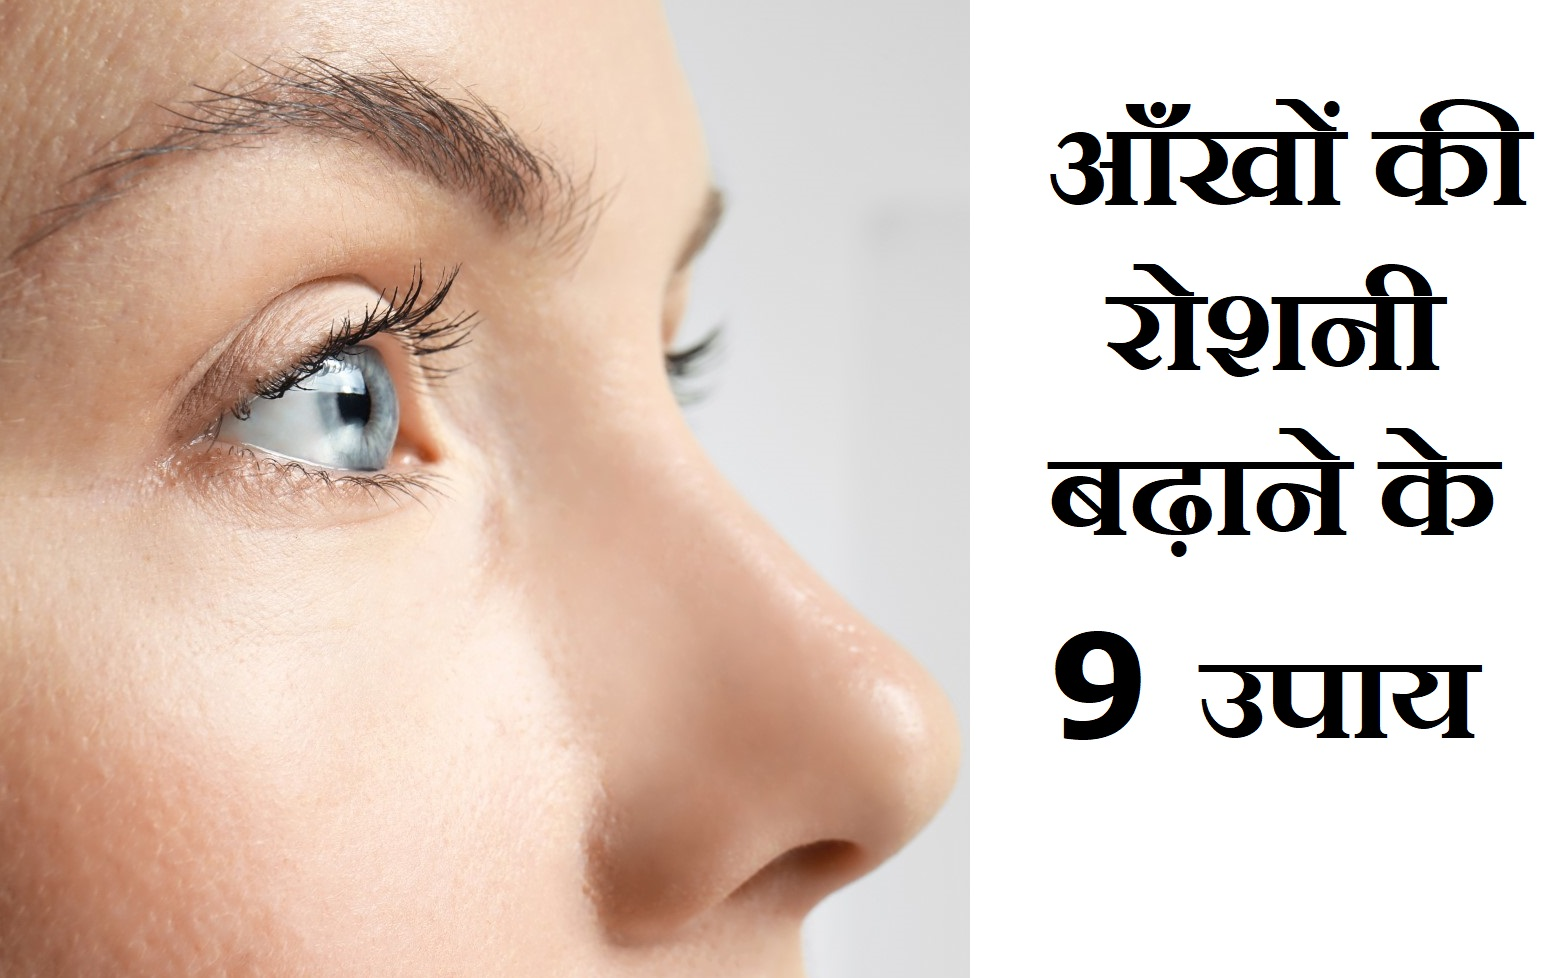 आँखों की रोशनी बढ़ाने के उपाय,How To Improve Eyesight In Hindi,aankho ki roshni kaise badhaye,chashma kaise hataye,eyesight kaise sudhar kare